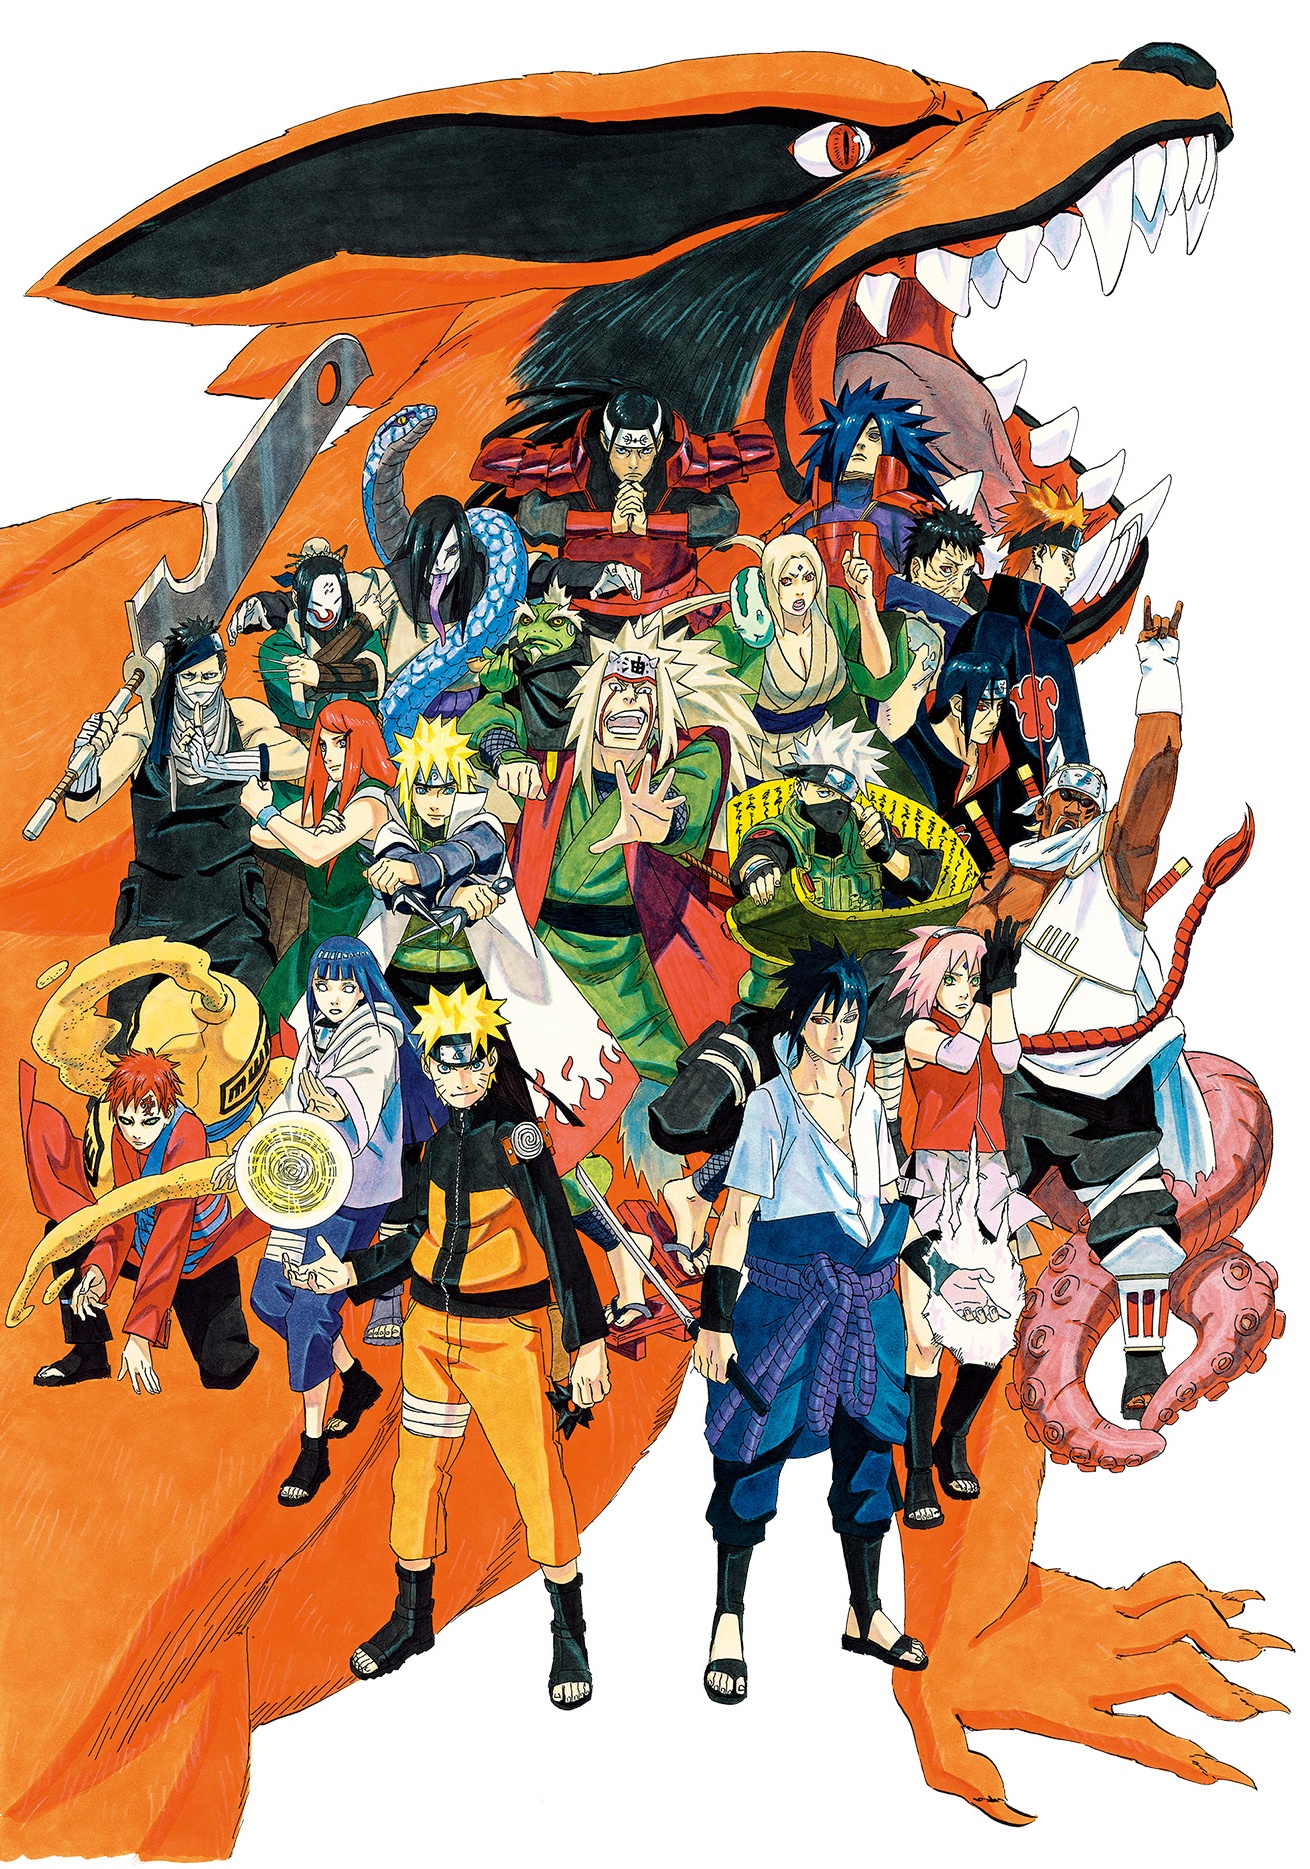 1310 x 1869 png 5327kBNaruto